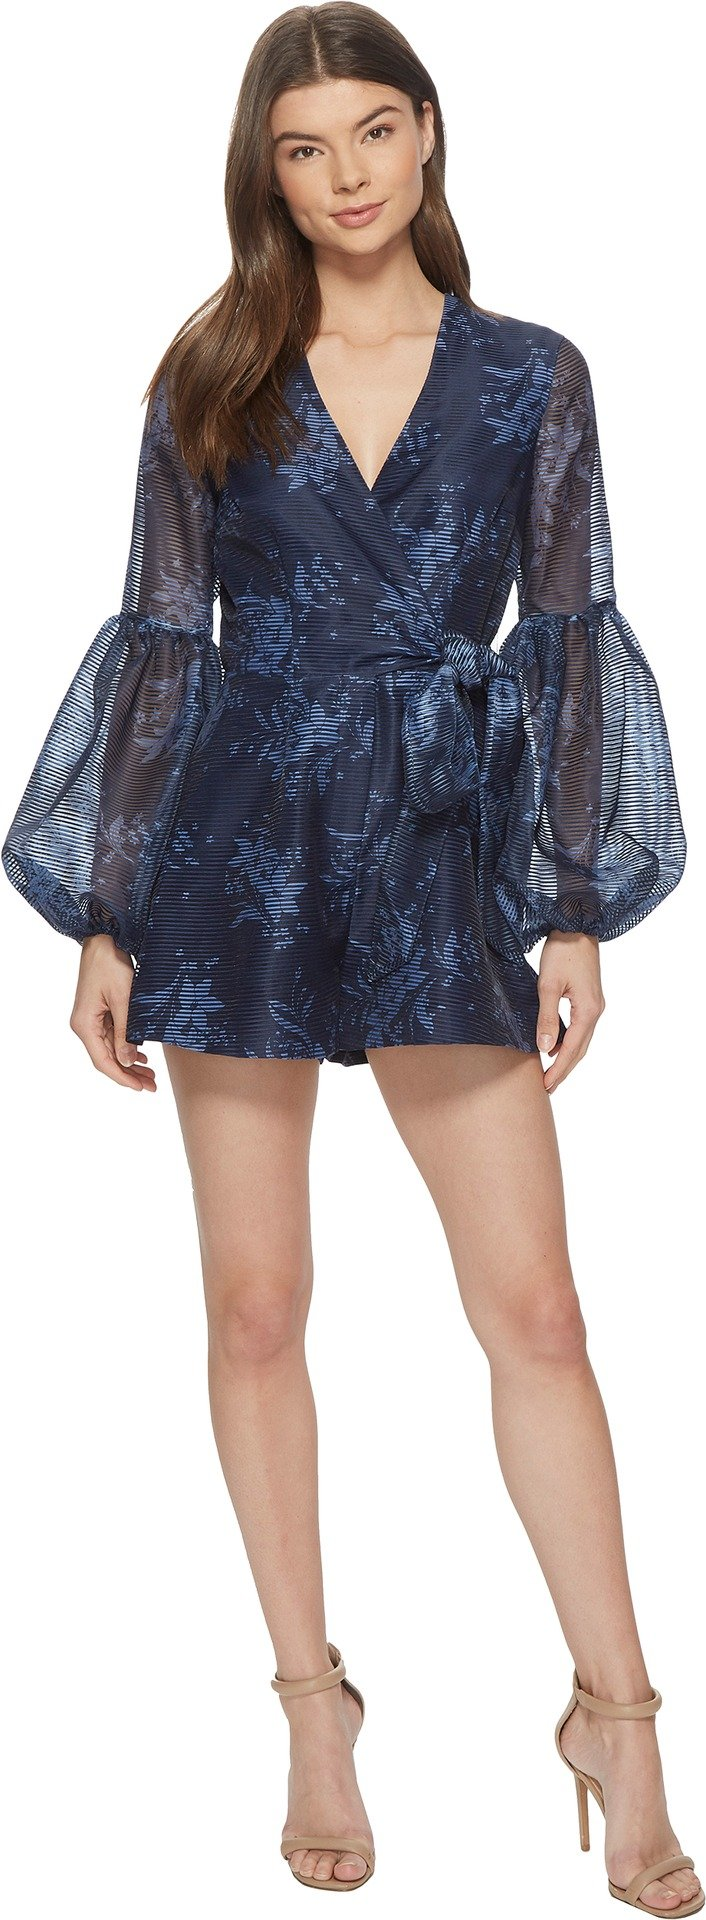 Keepsake The Label Women's Stand Tall Playsuit Navy Stencil Floral MD (US 4-6)